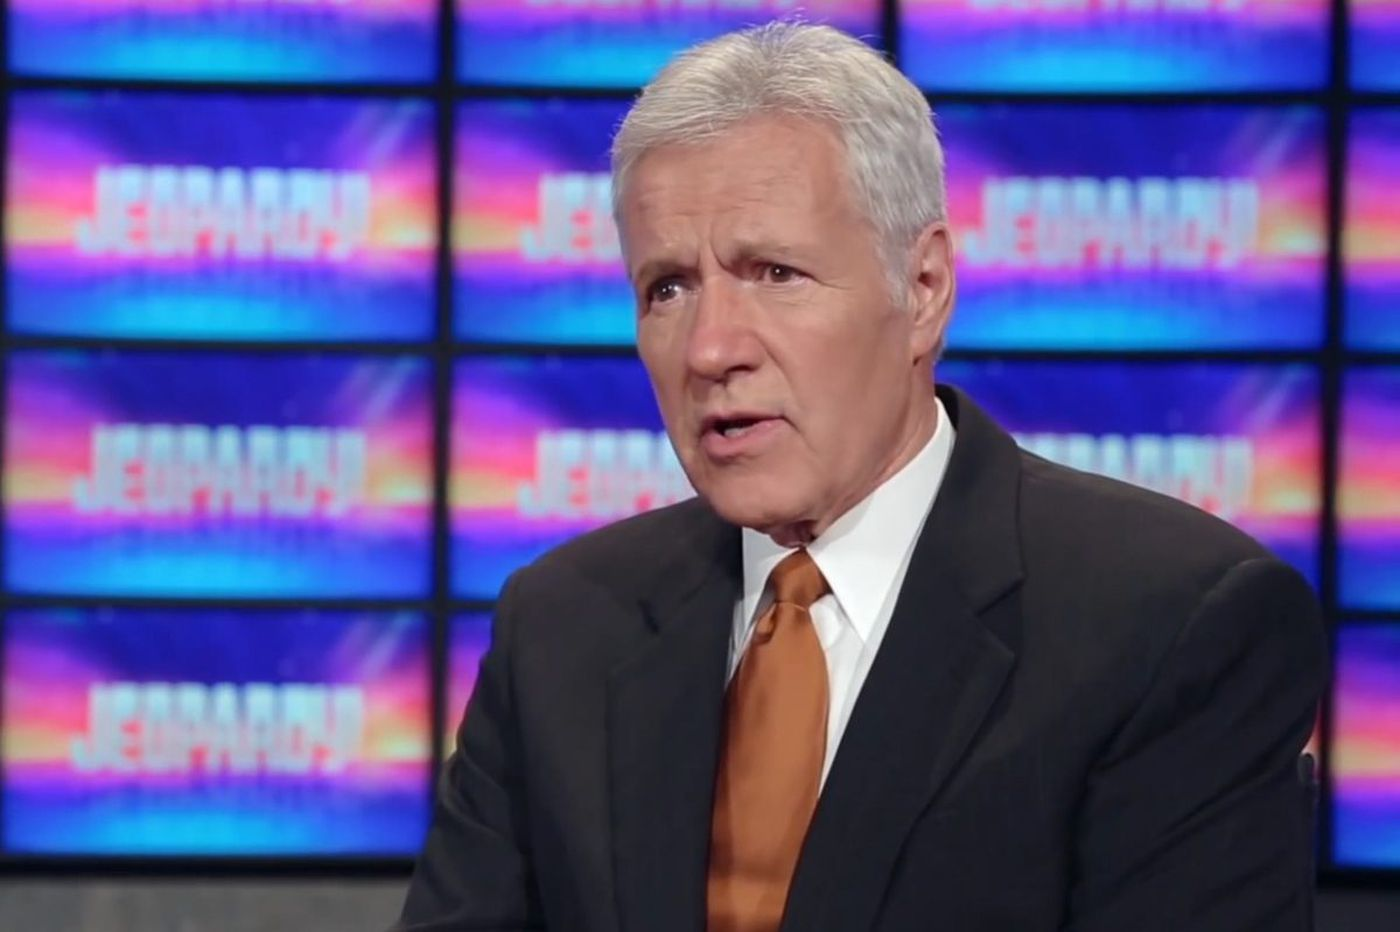 'Jeopardy!' host Alex Trebek to moderate a Pa. gubernatorial debate